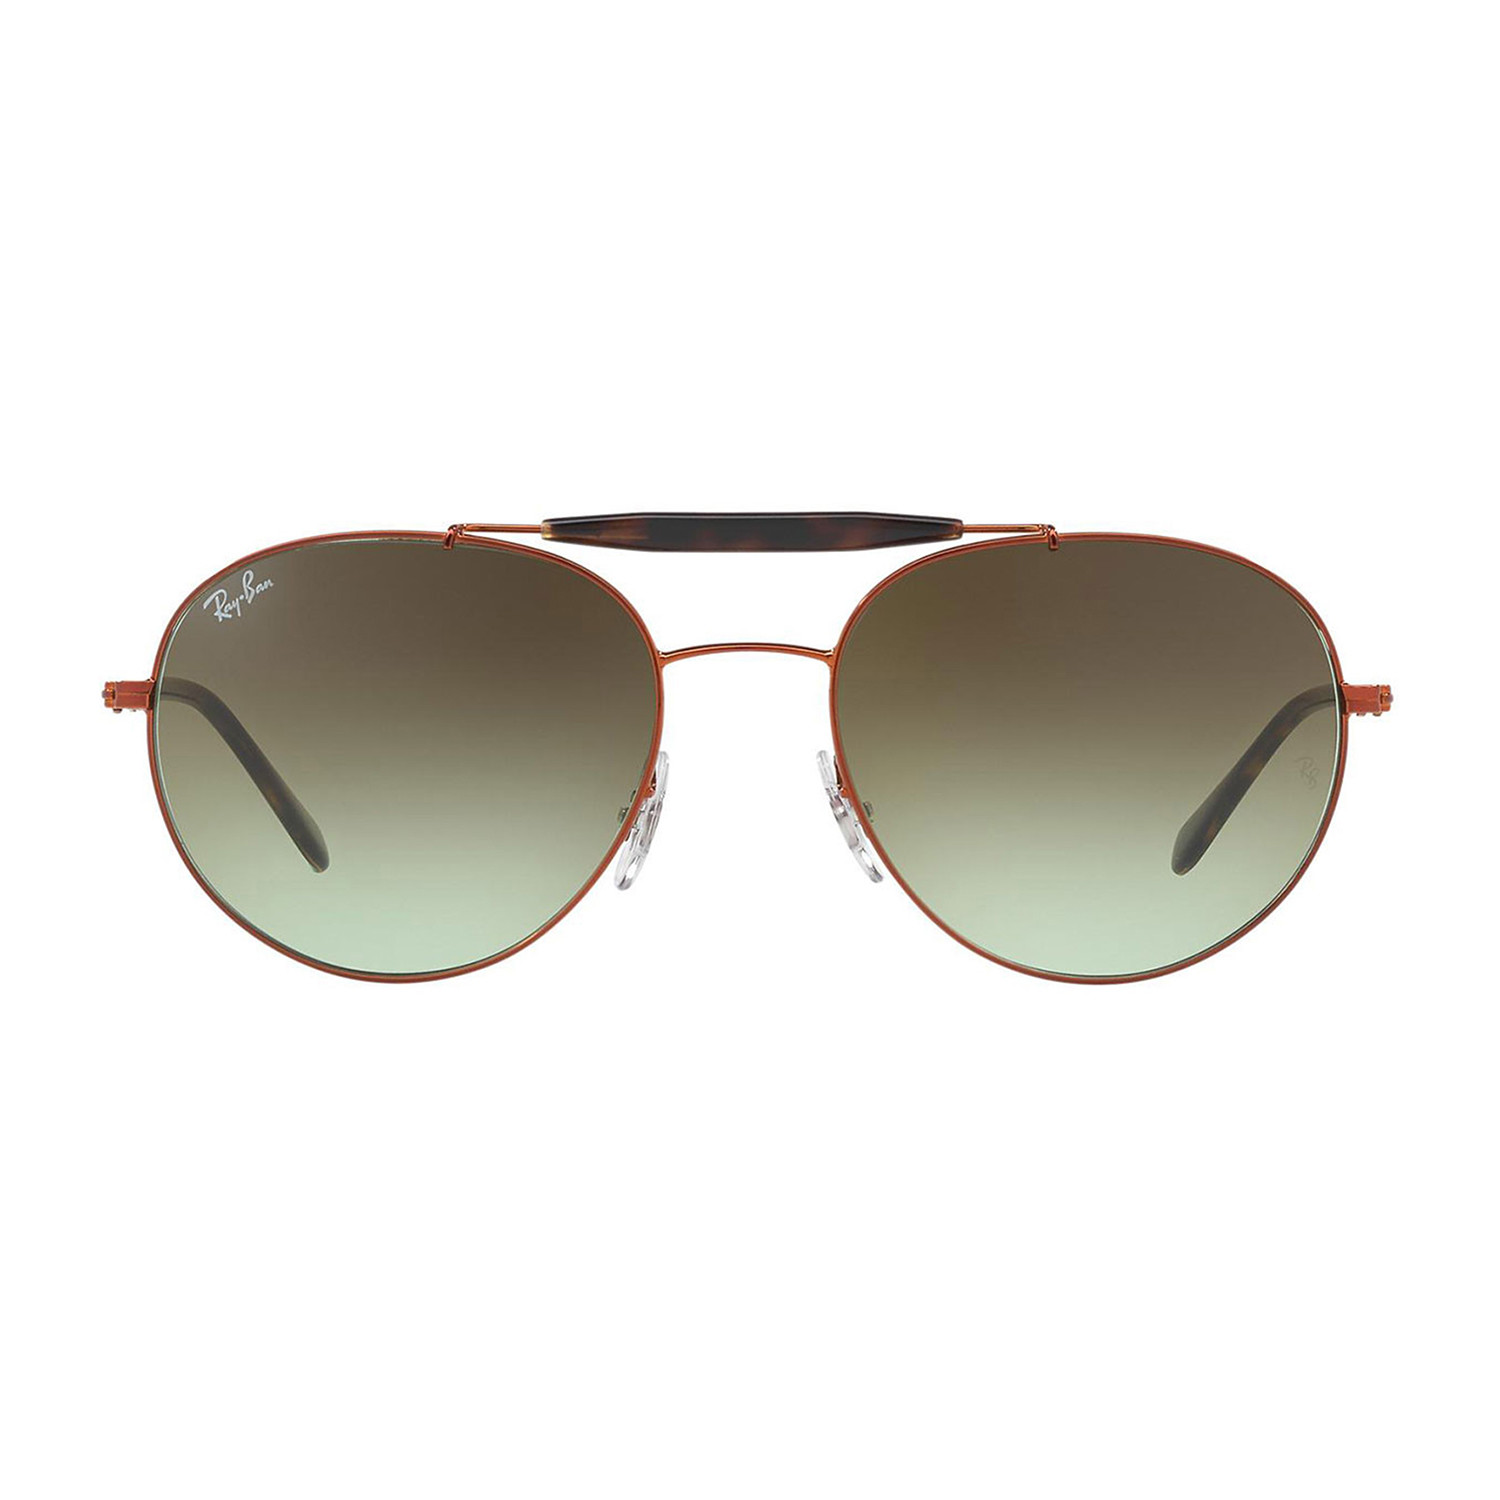 592eb44de7 F7f8d787dc9ecadff8e2ea5894f1aa0b medium. Round Metal Aviator Sunglasses     Gold ...